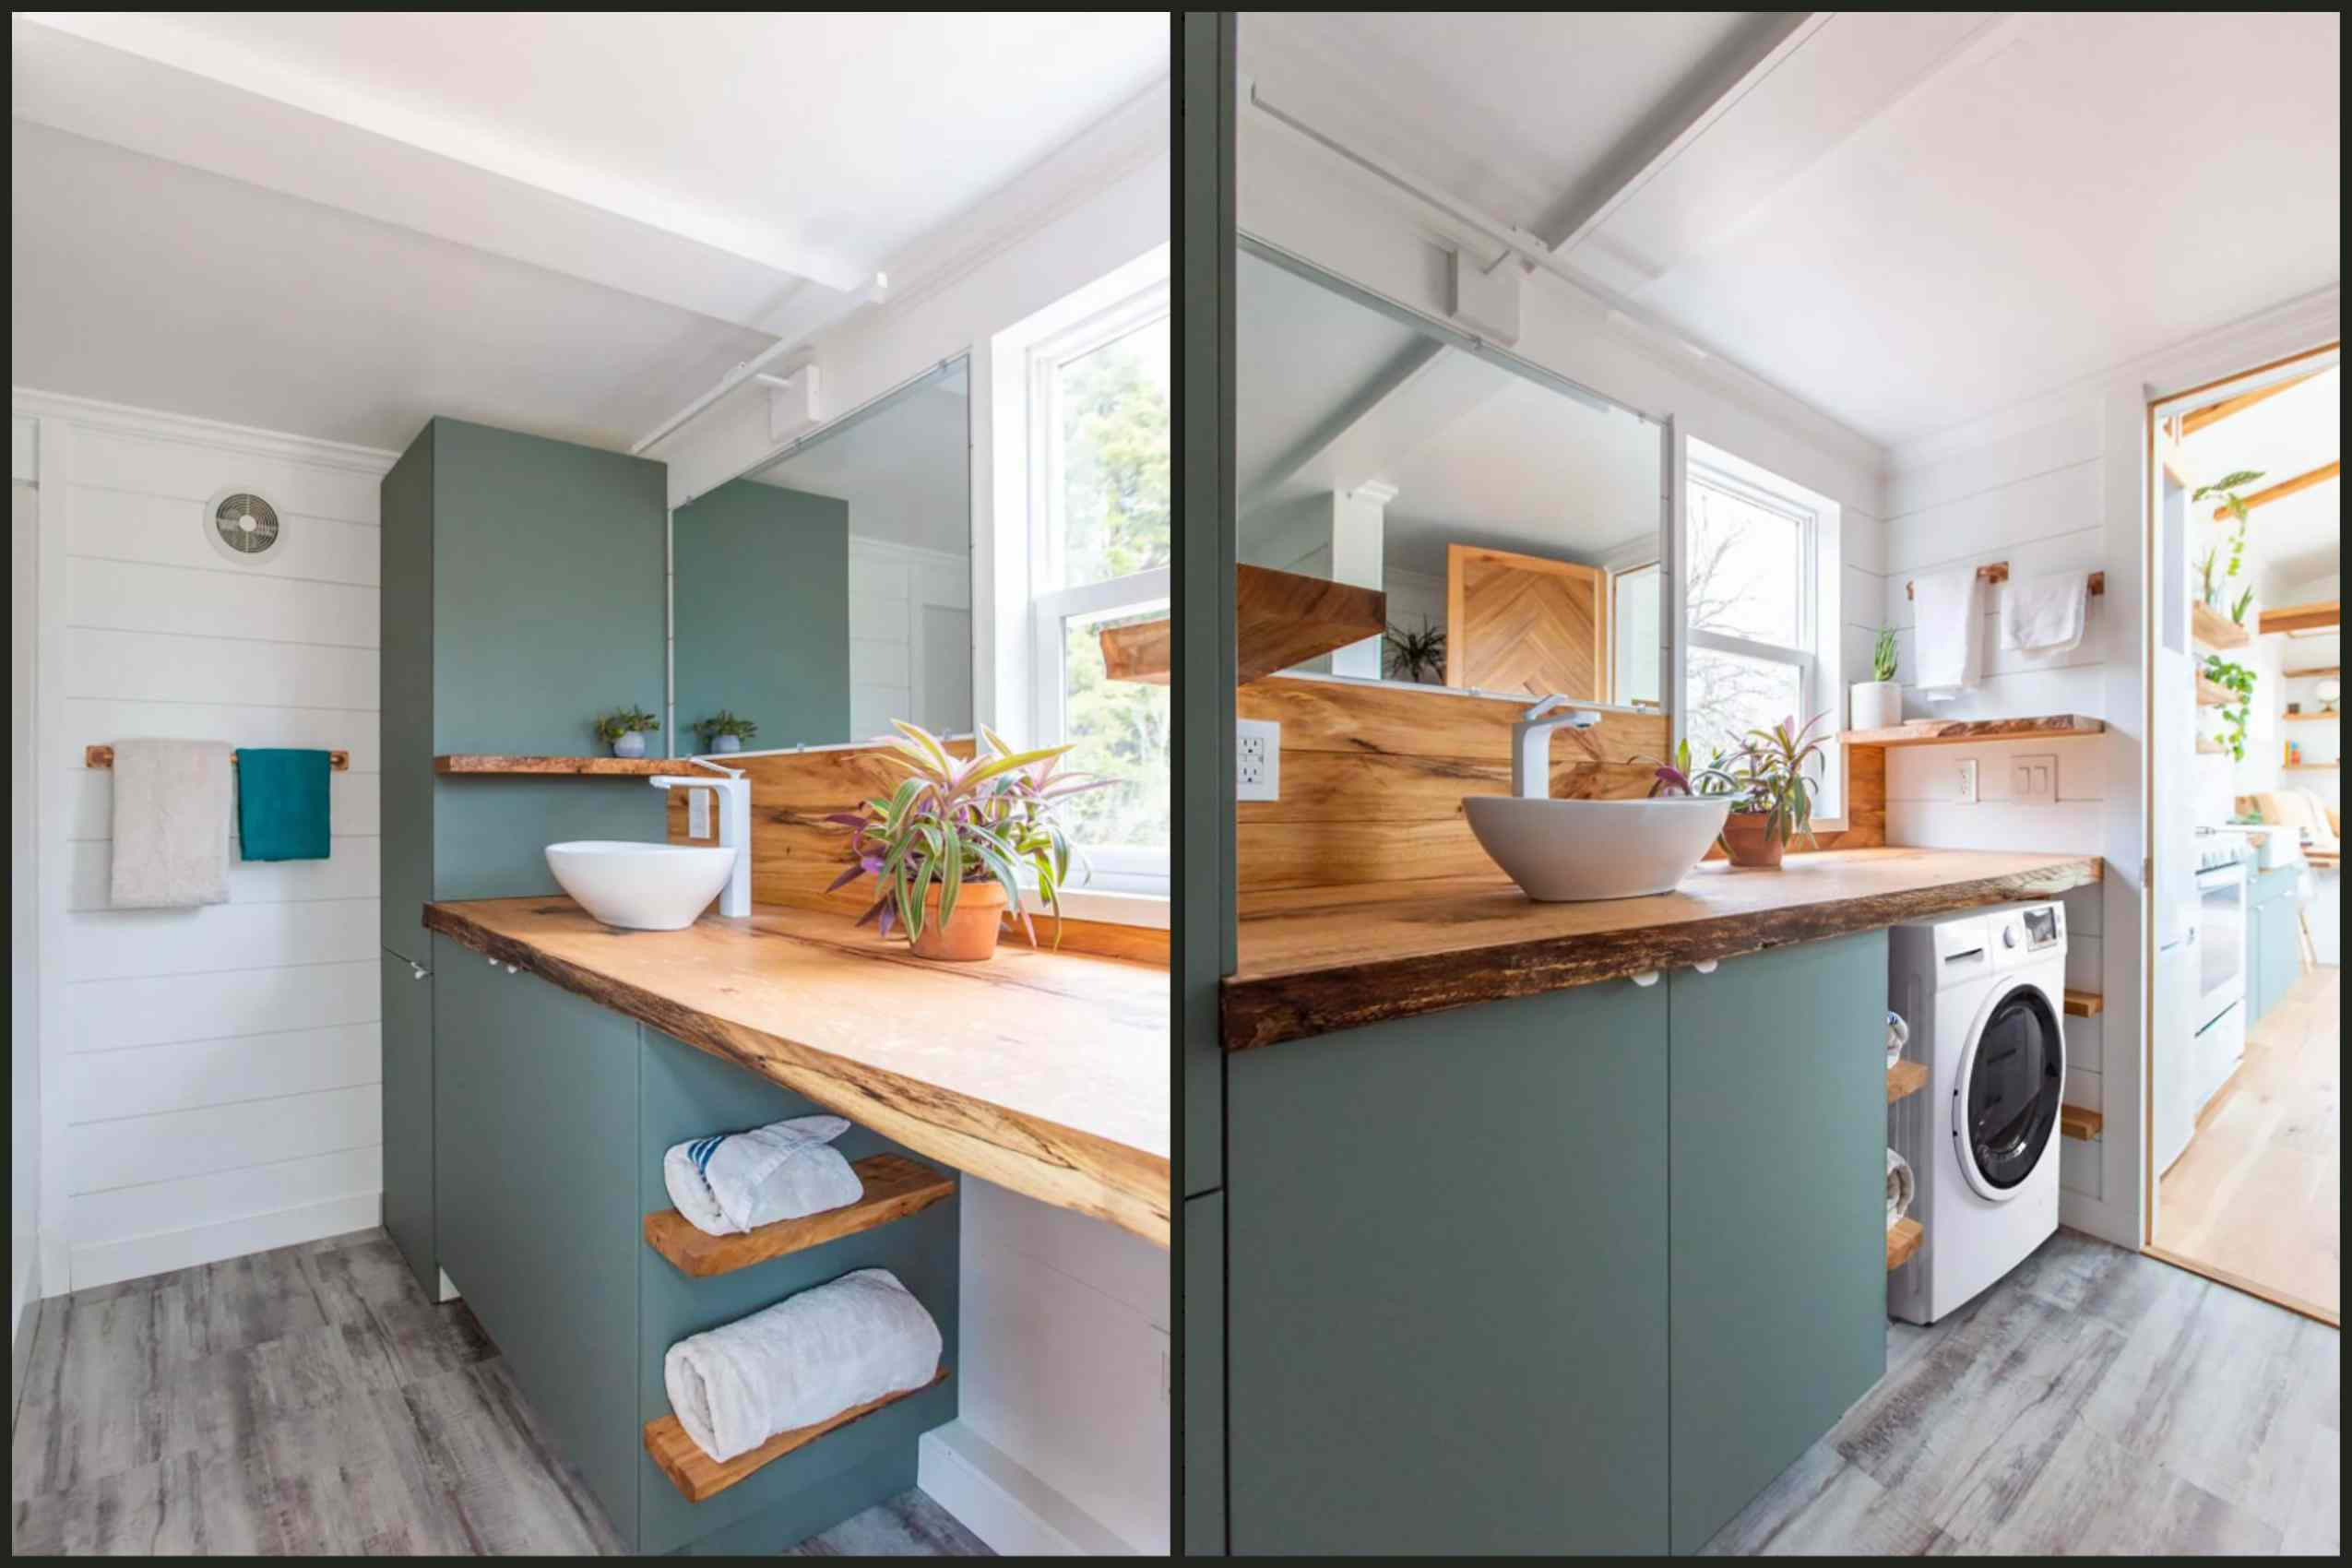 Two views of a bathroom in the Sycamore tiny house